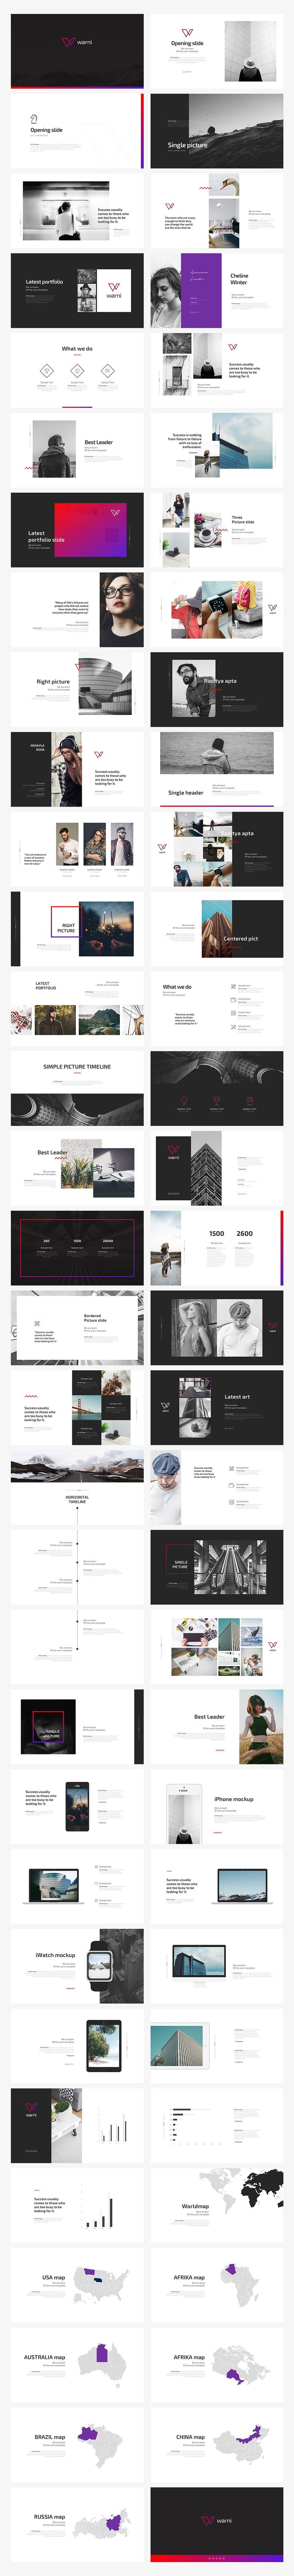 Warni PowerPoint Template by Angkalimabelas on @creativemarket